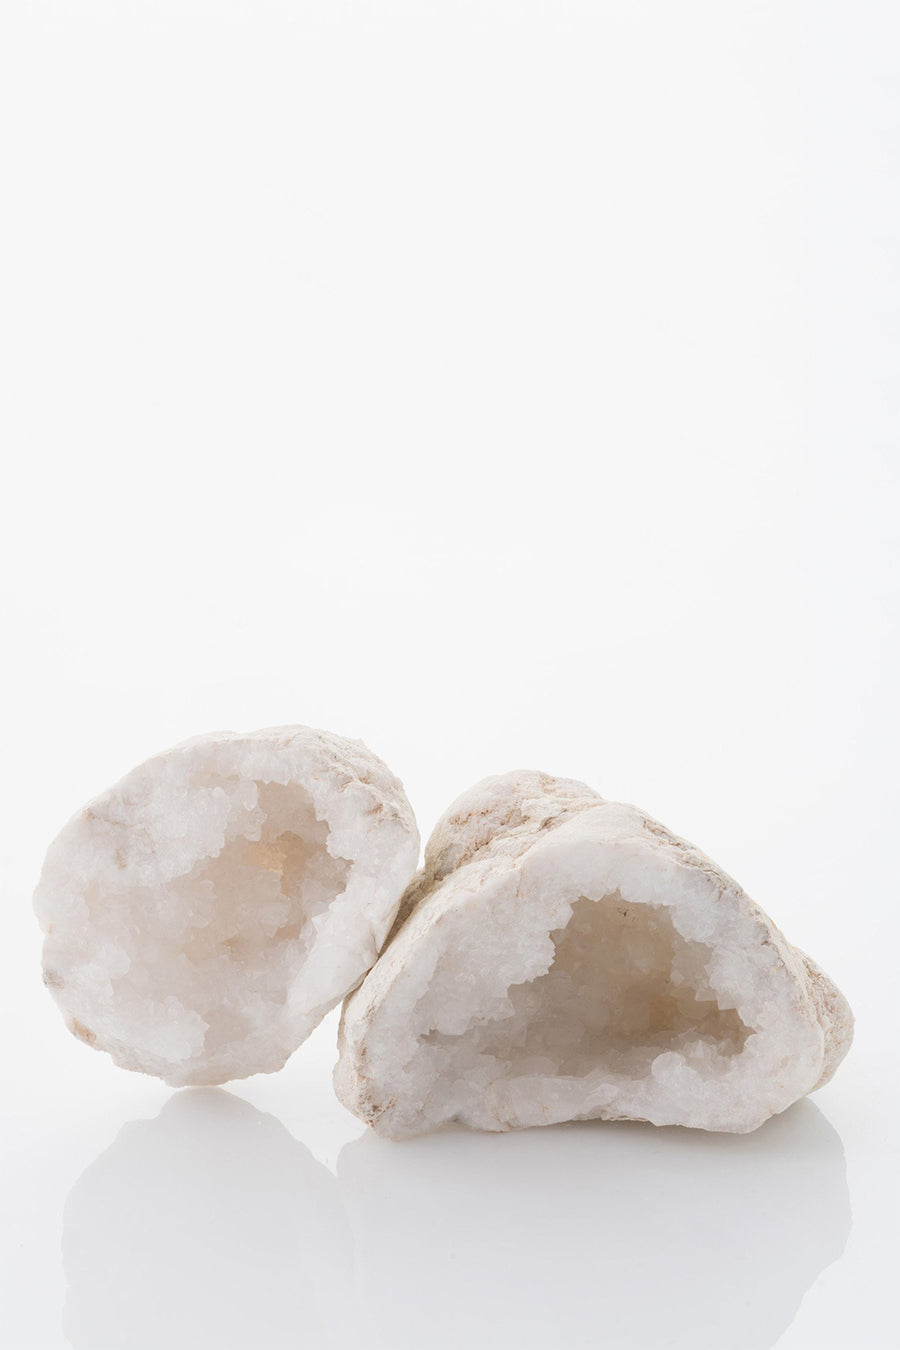 Whole White Quartz Geode